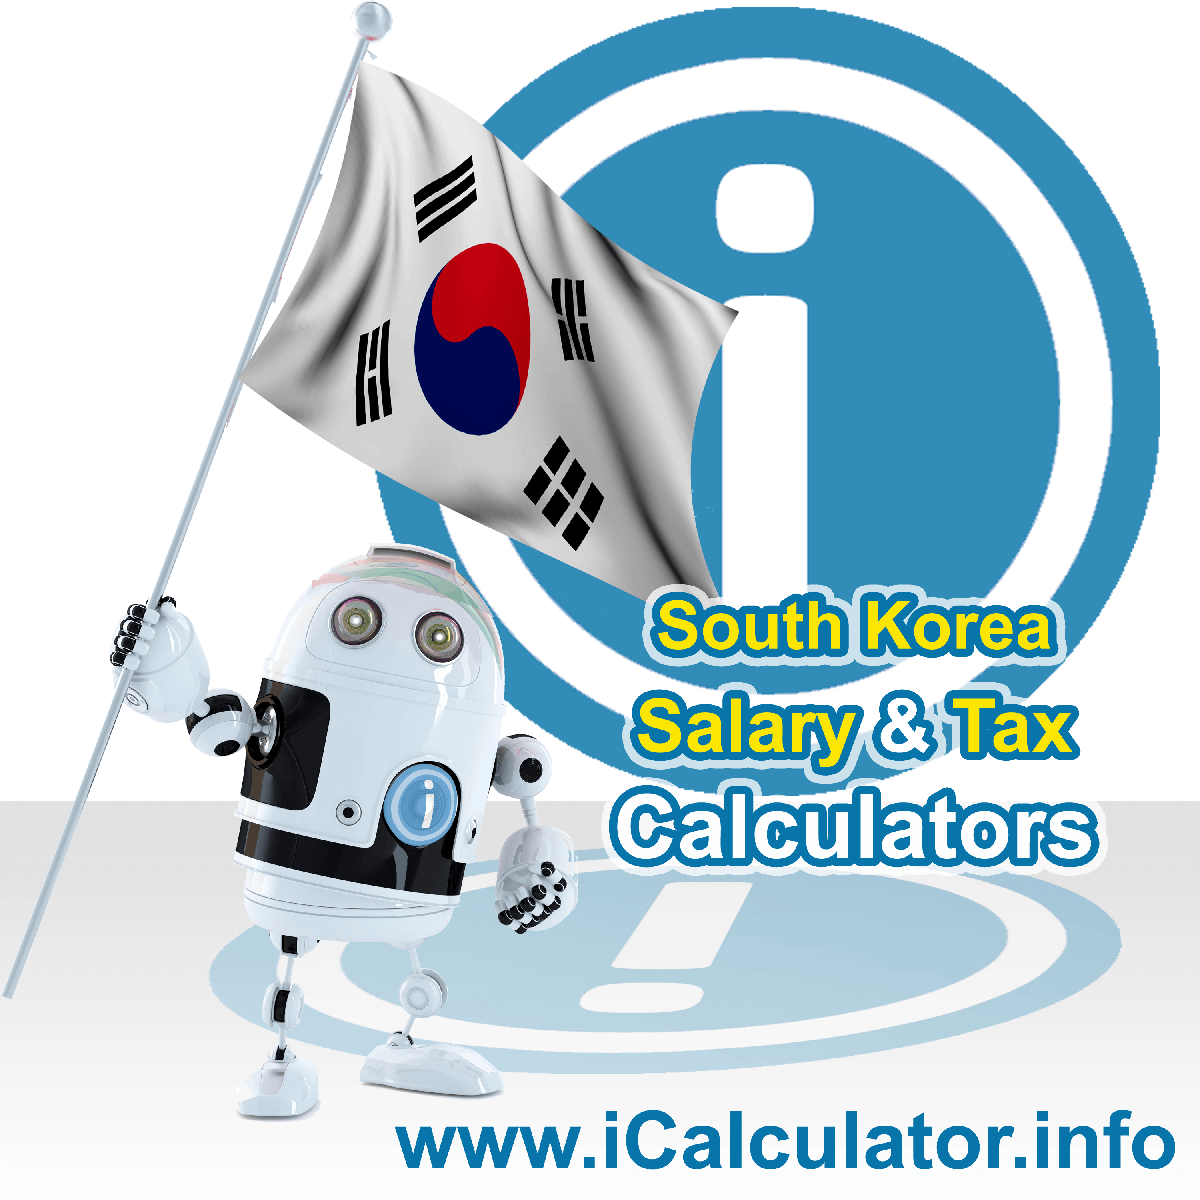 South Korea Wage Calculator. This image shows the South Korea flag and information relating to the tax formula for the South Korea Tax Calculator